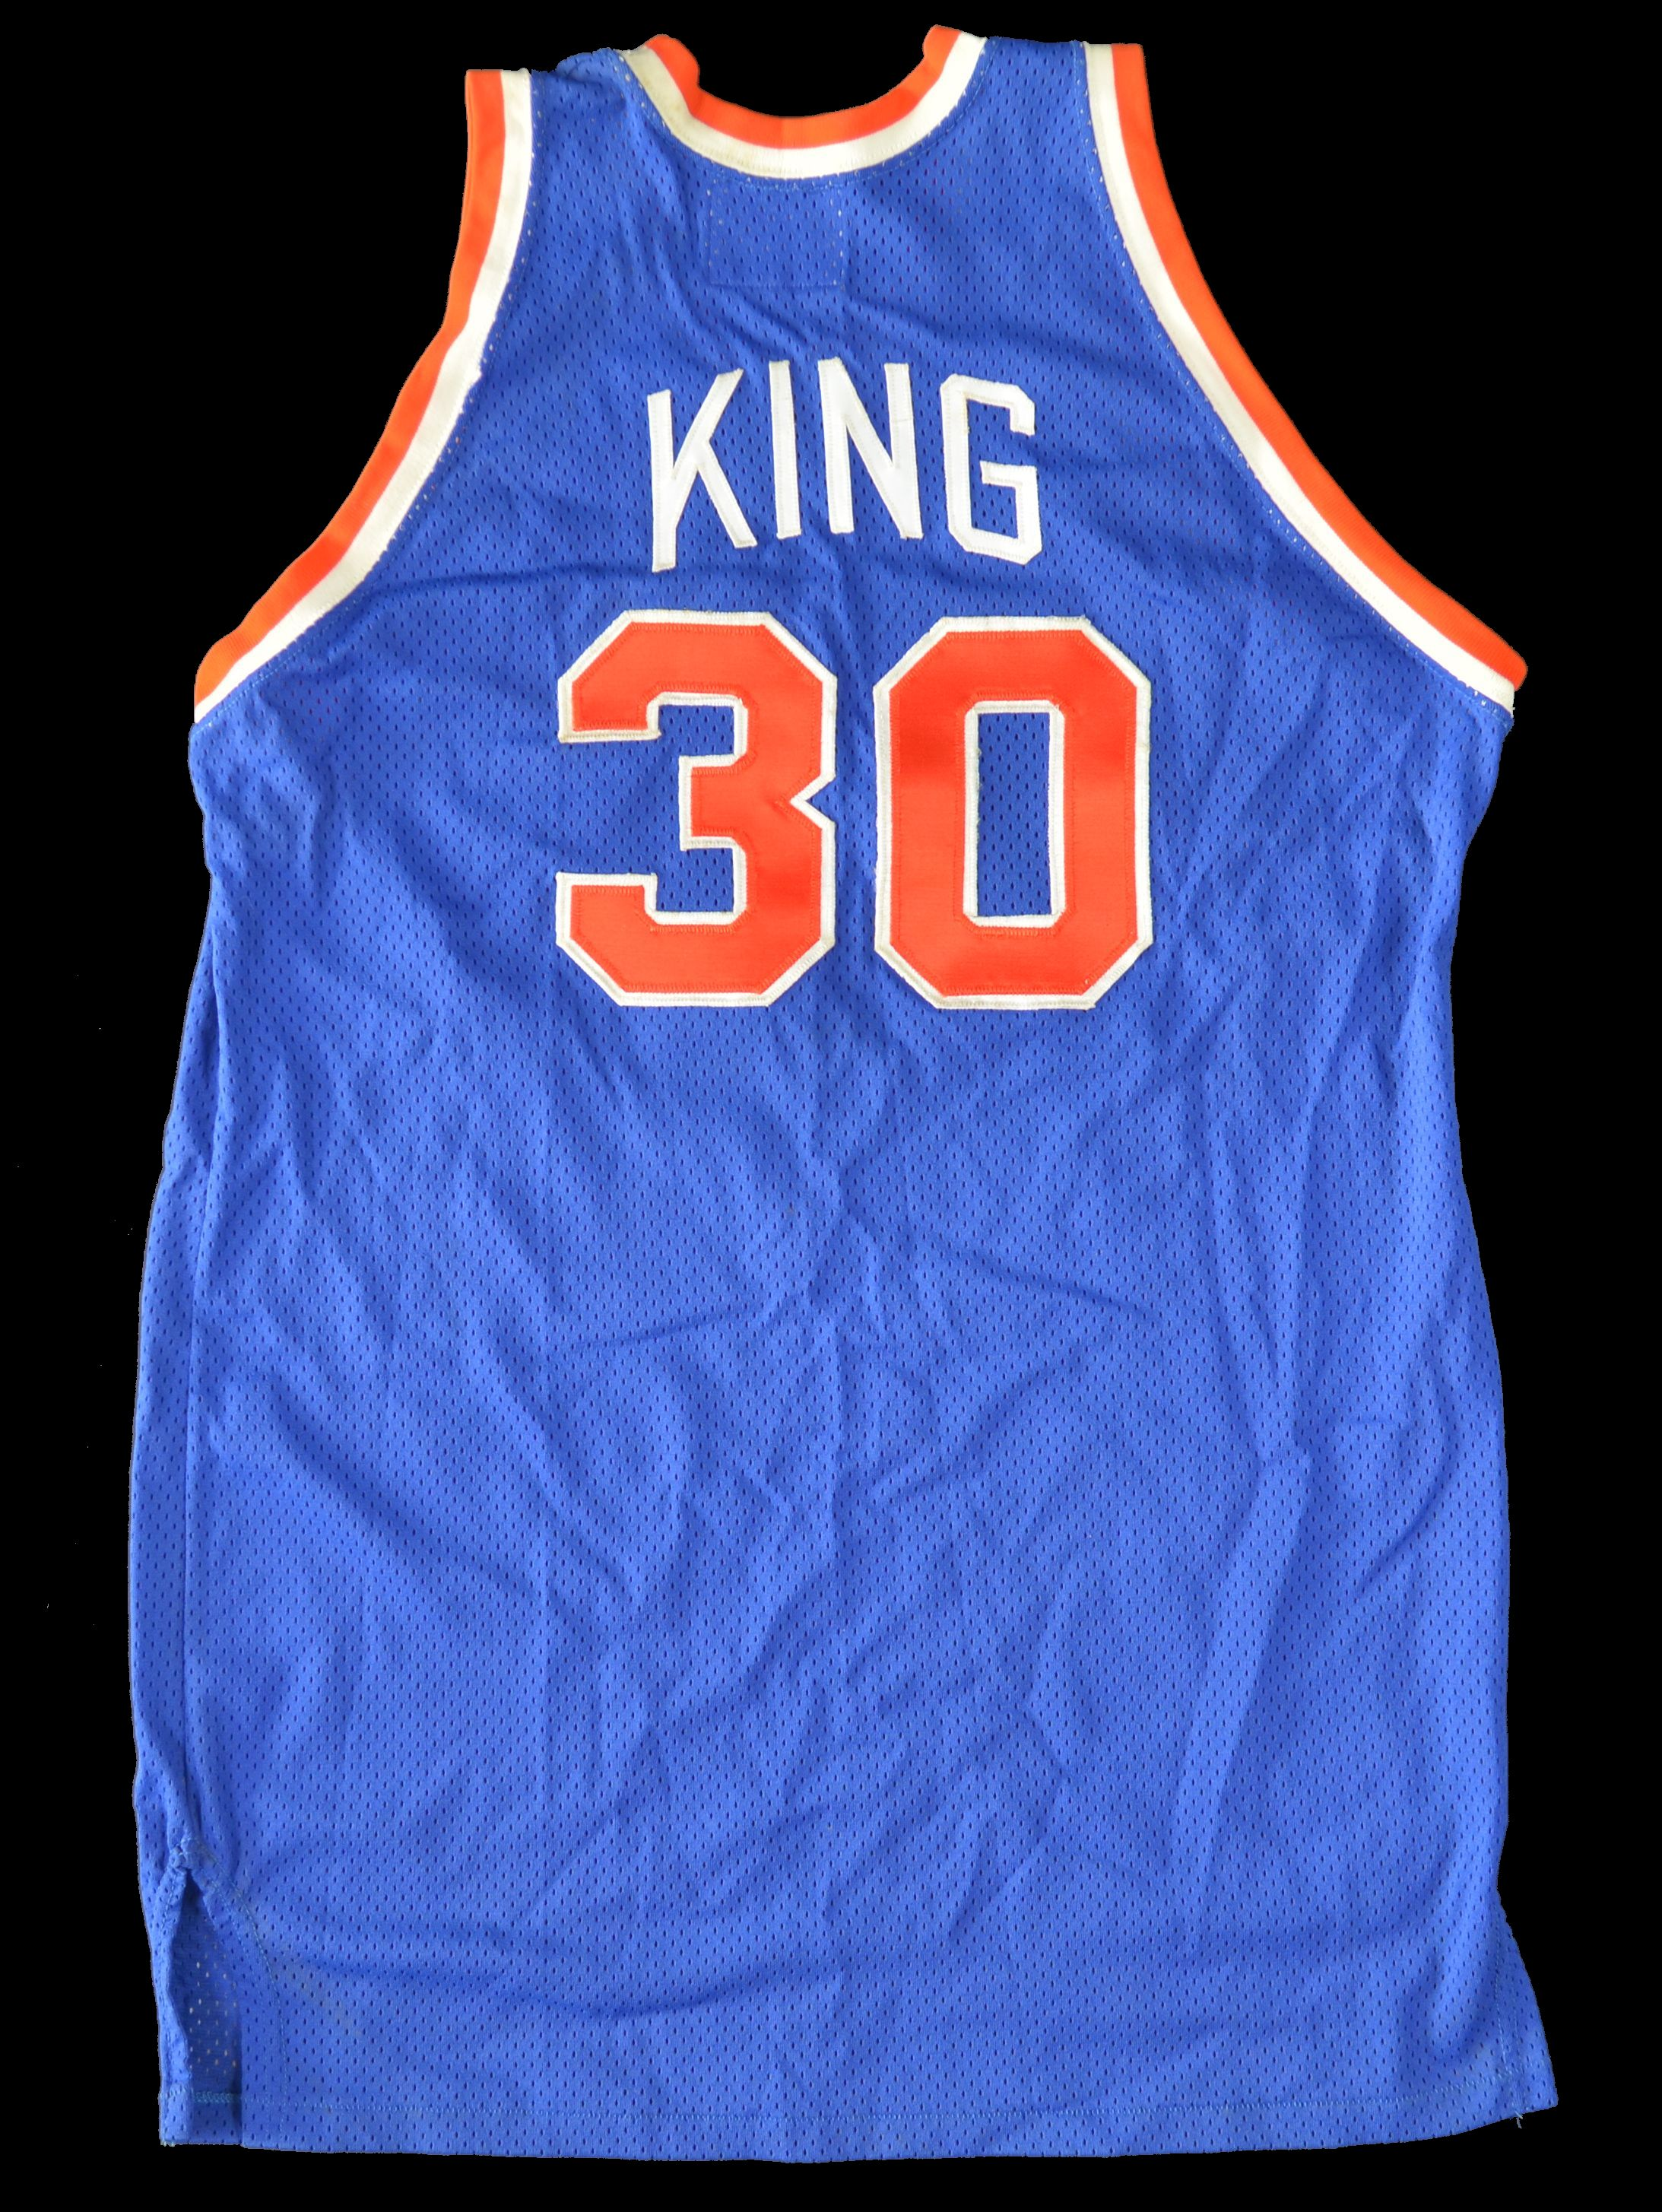 the latest ecb6a 63105 new york knicks bernard king jersey